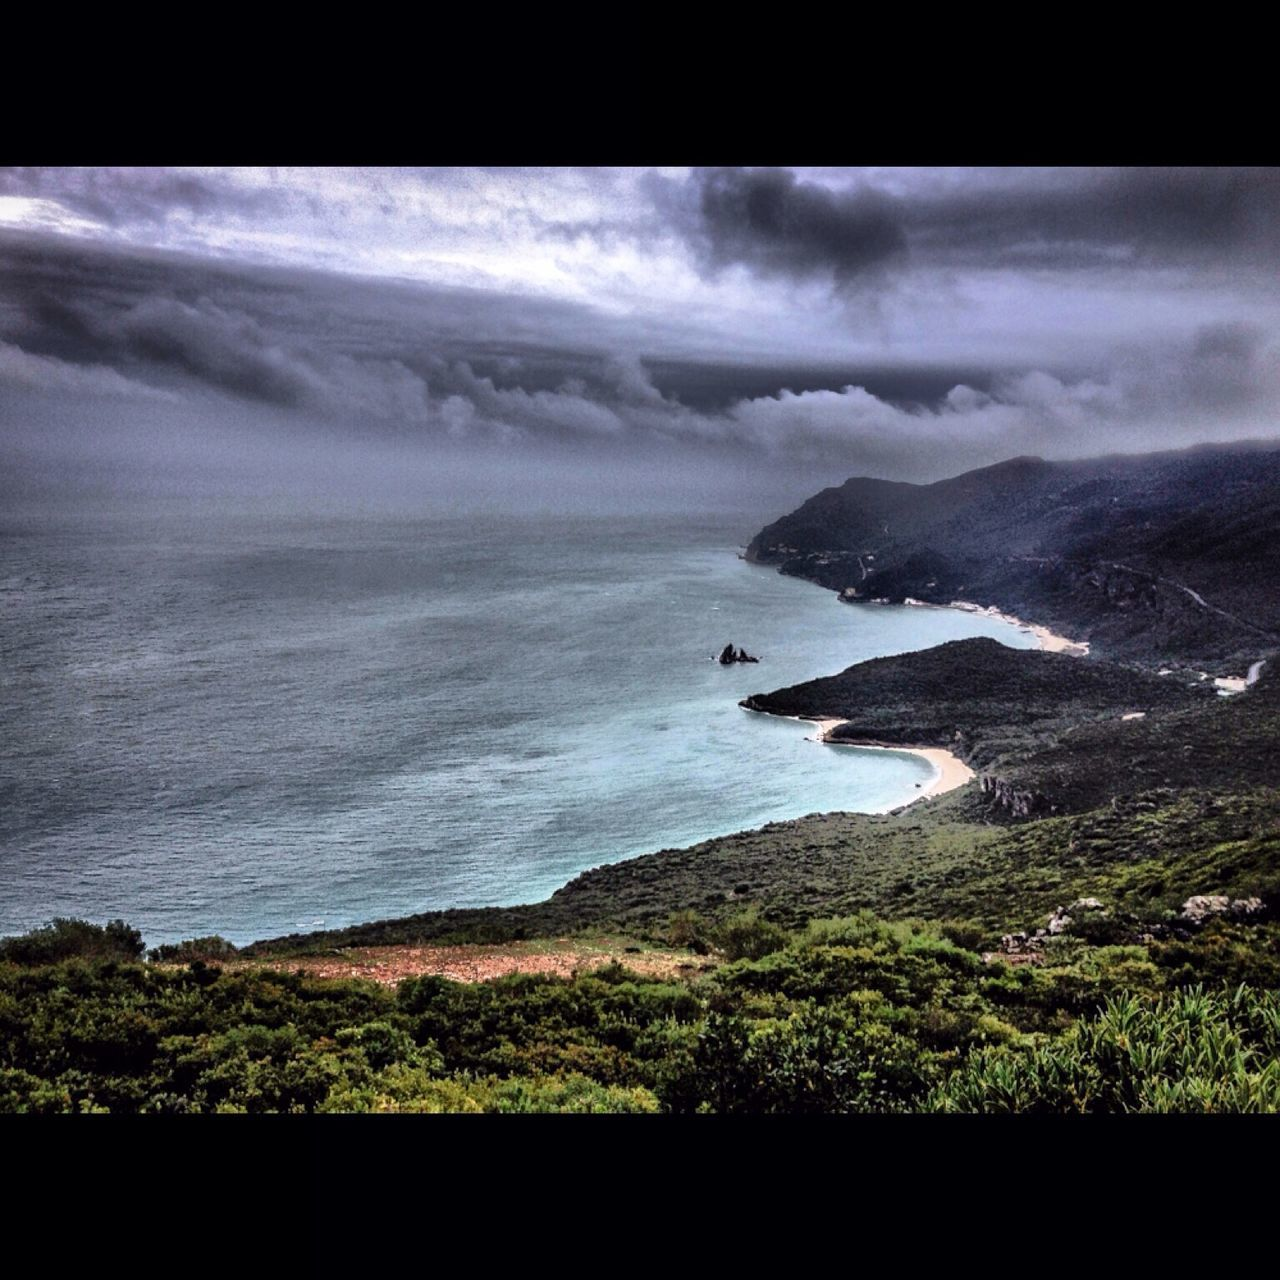 High Angle View Of Mountains And Sea Against Cloudy Sky